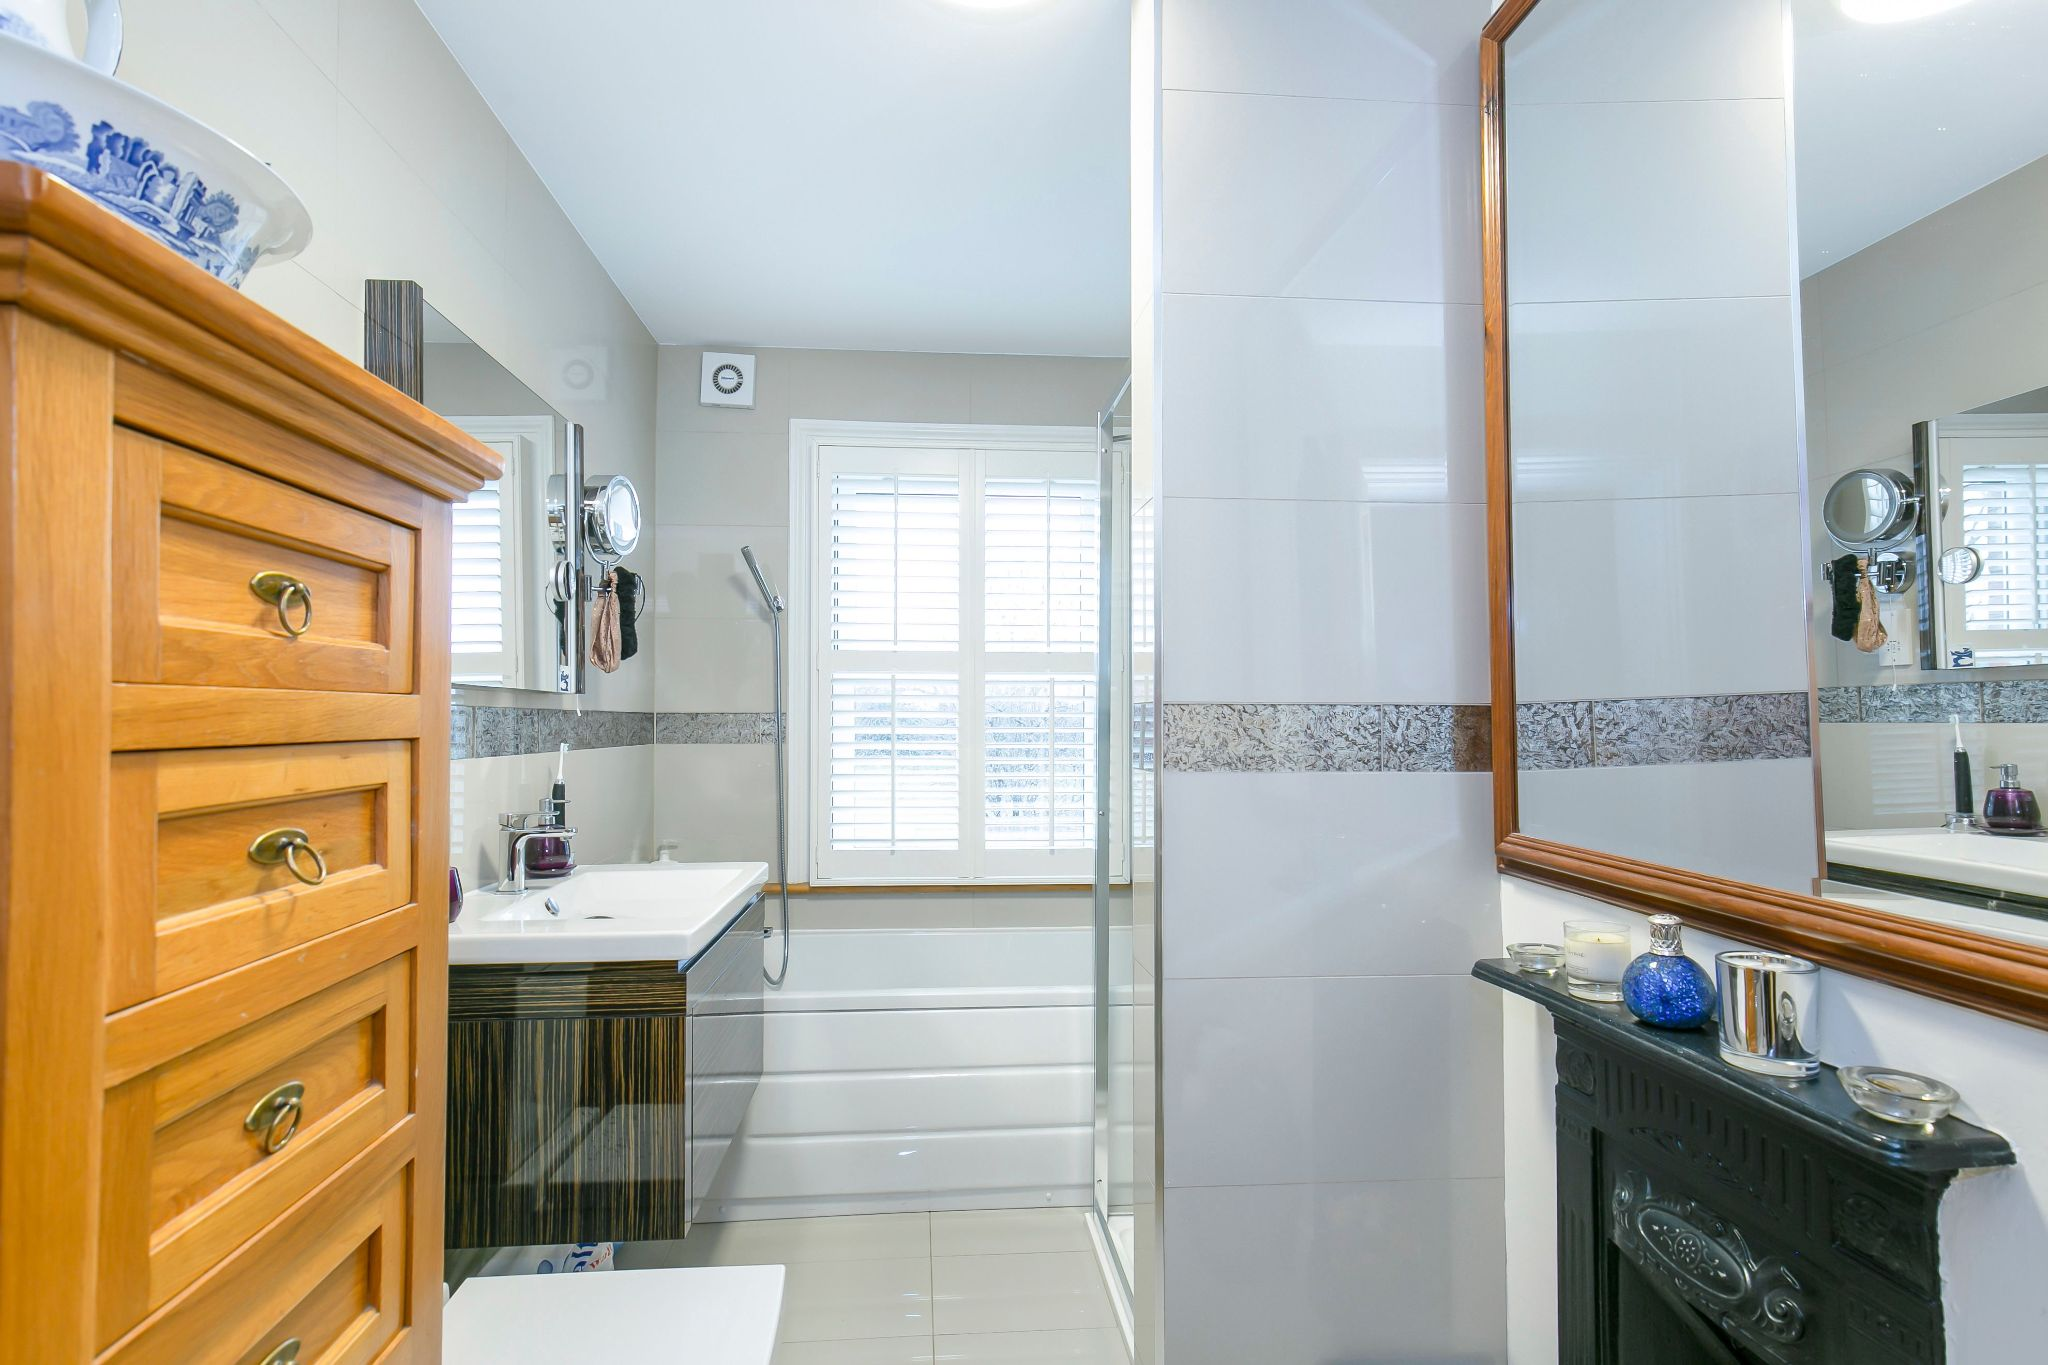 3 bedroom cottage house SSTC in Little Heath Potters Bar - Photograph 10